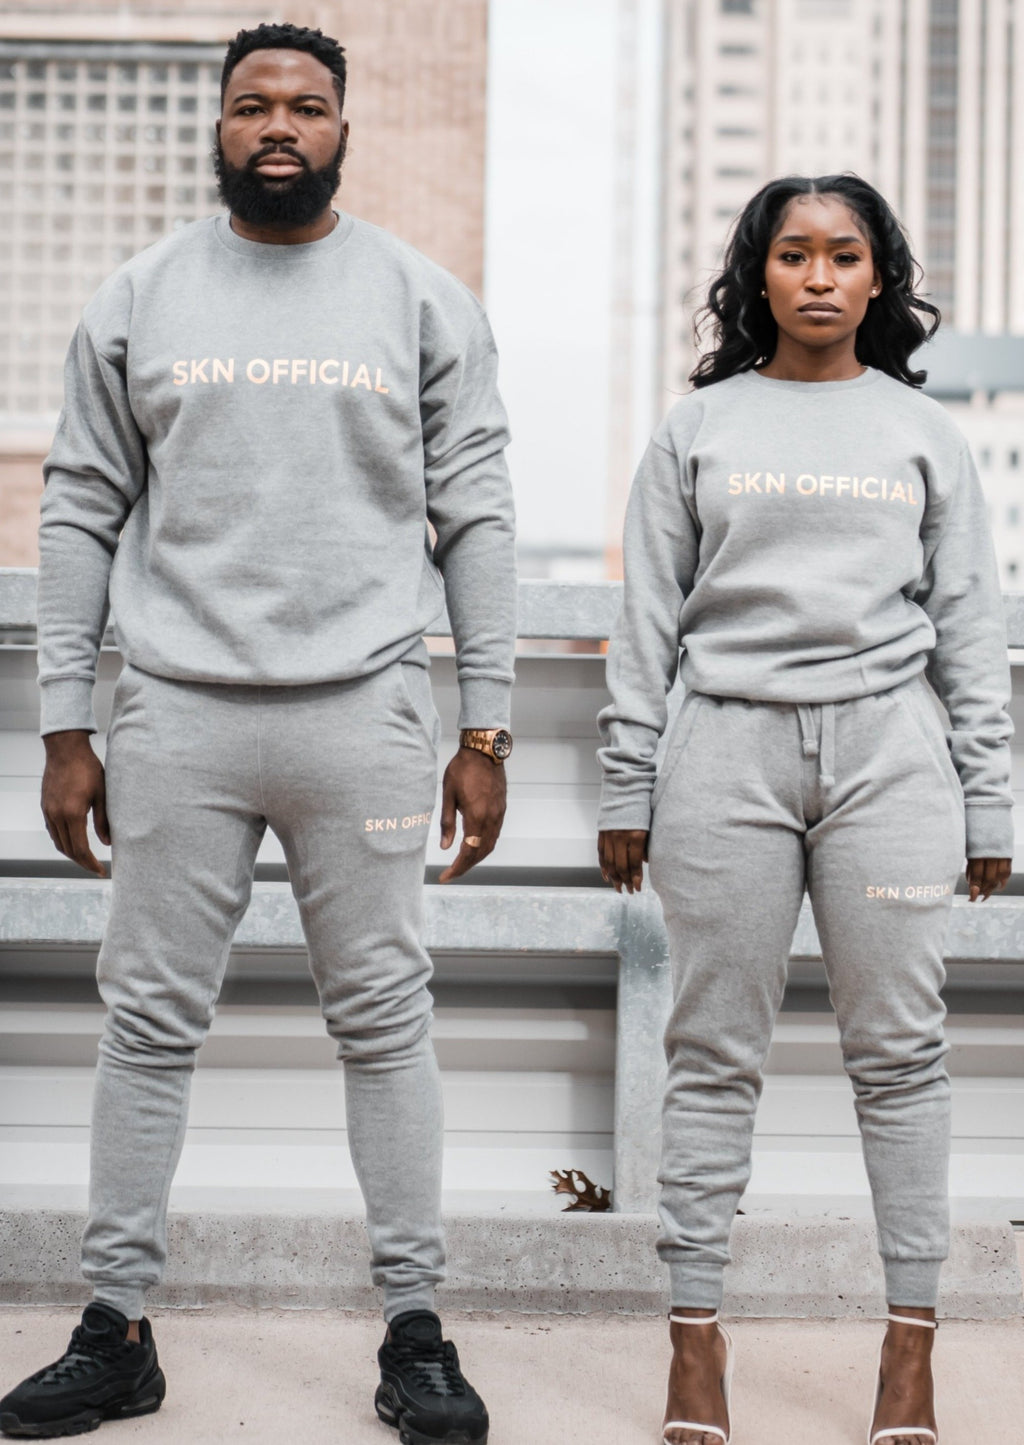 UNISEX-SKIN OFFICIAL JOGGER SET